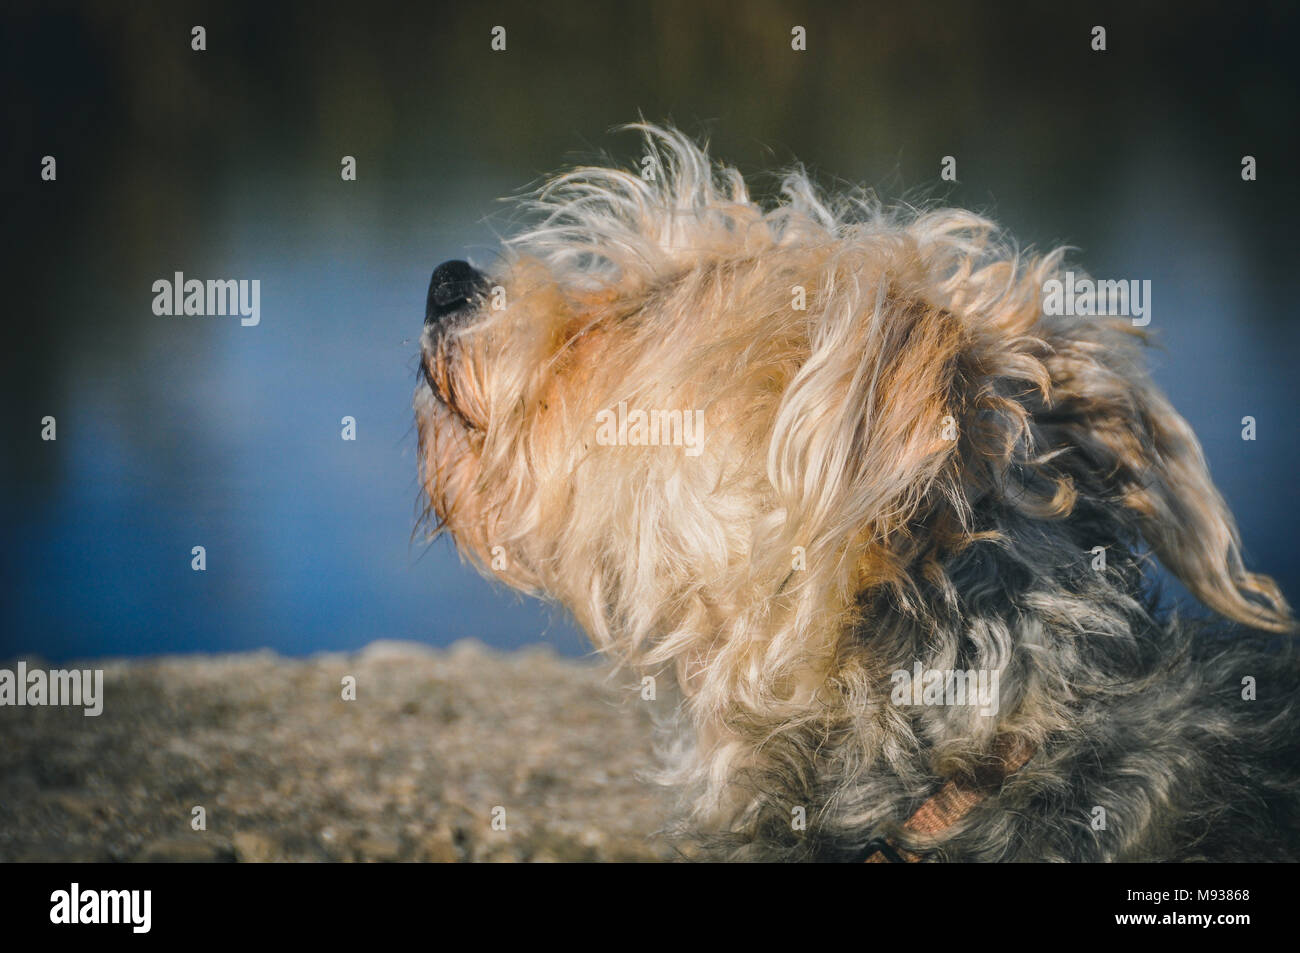 Barking Puppy Stock Photos Barking Puppy Stock Images